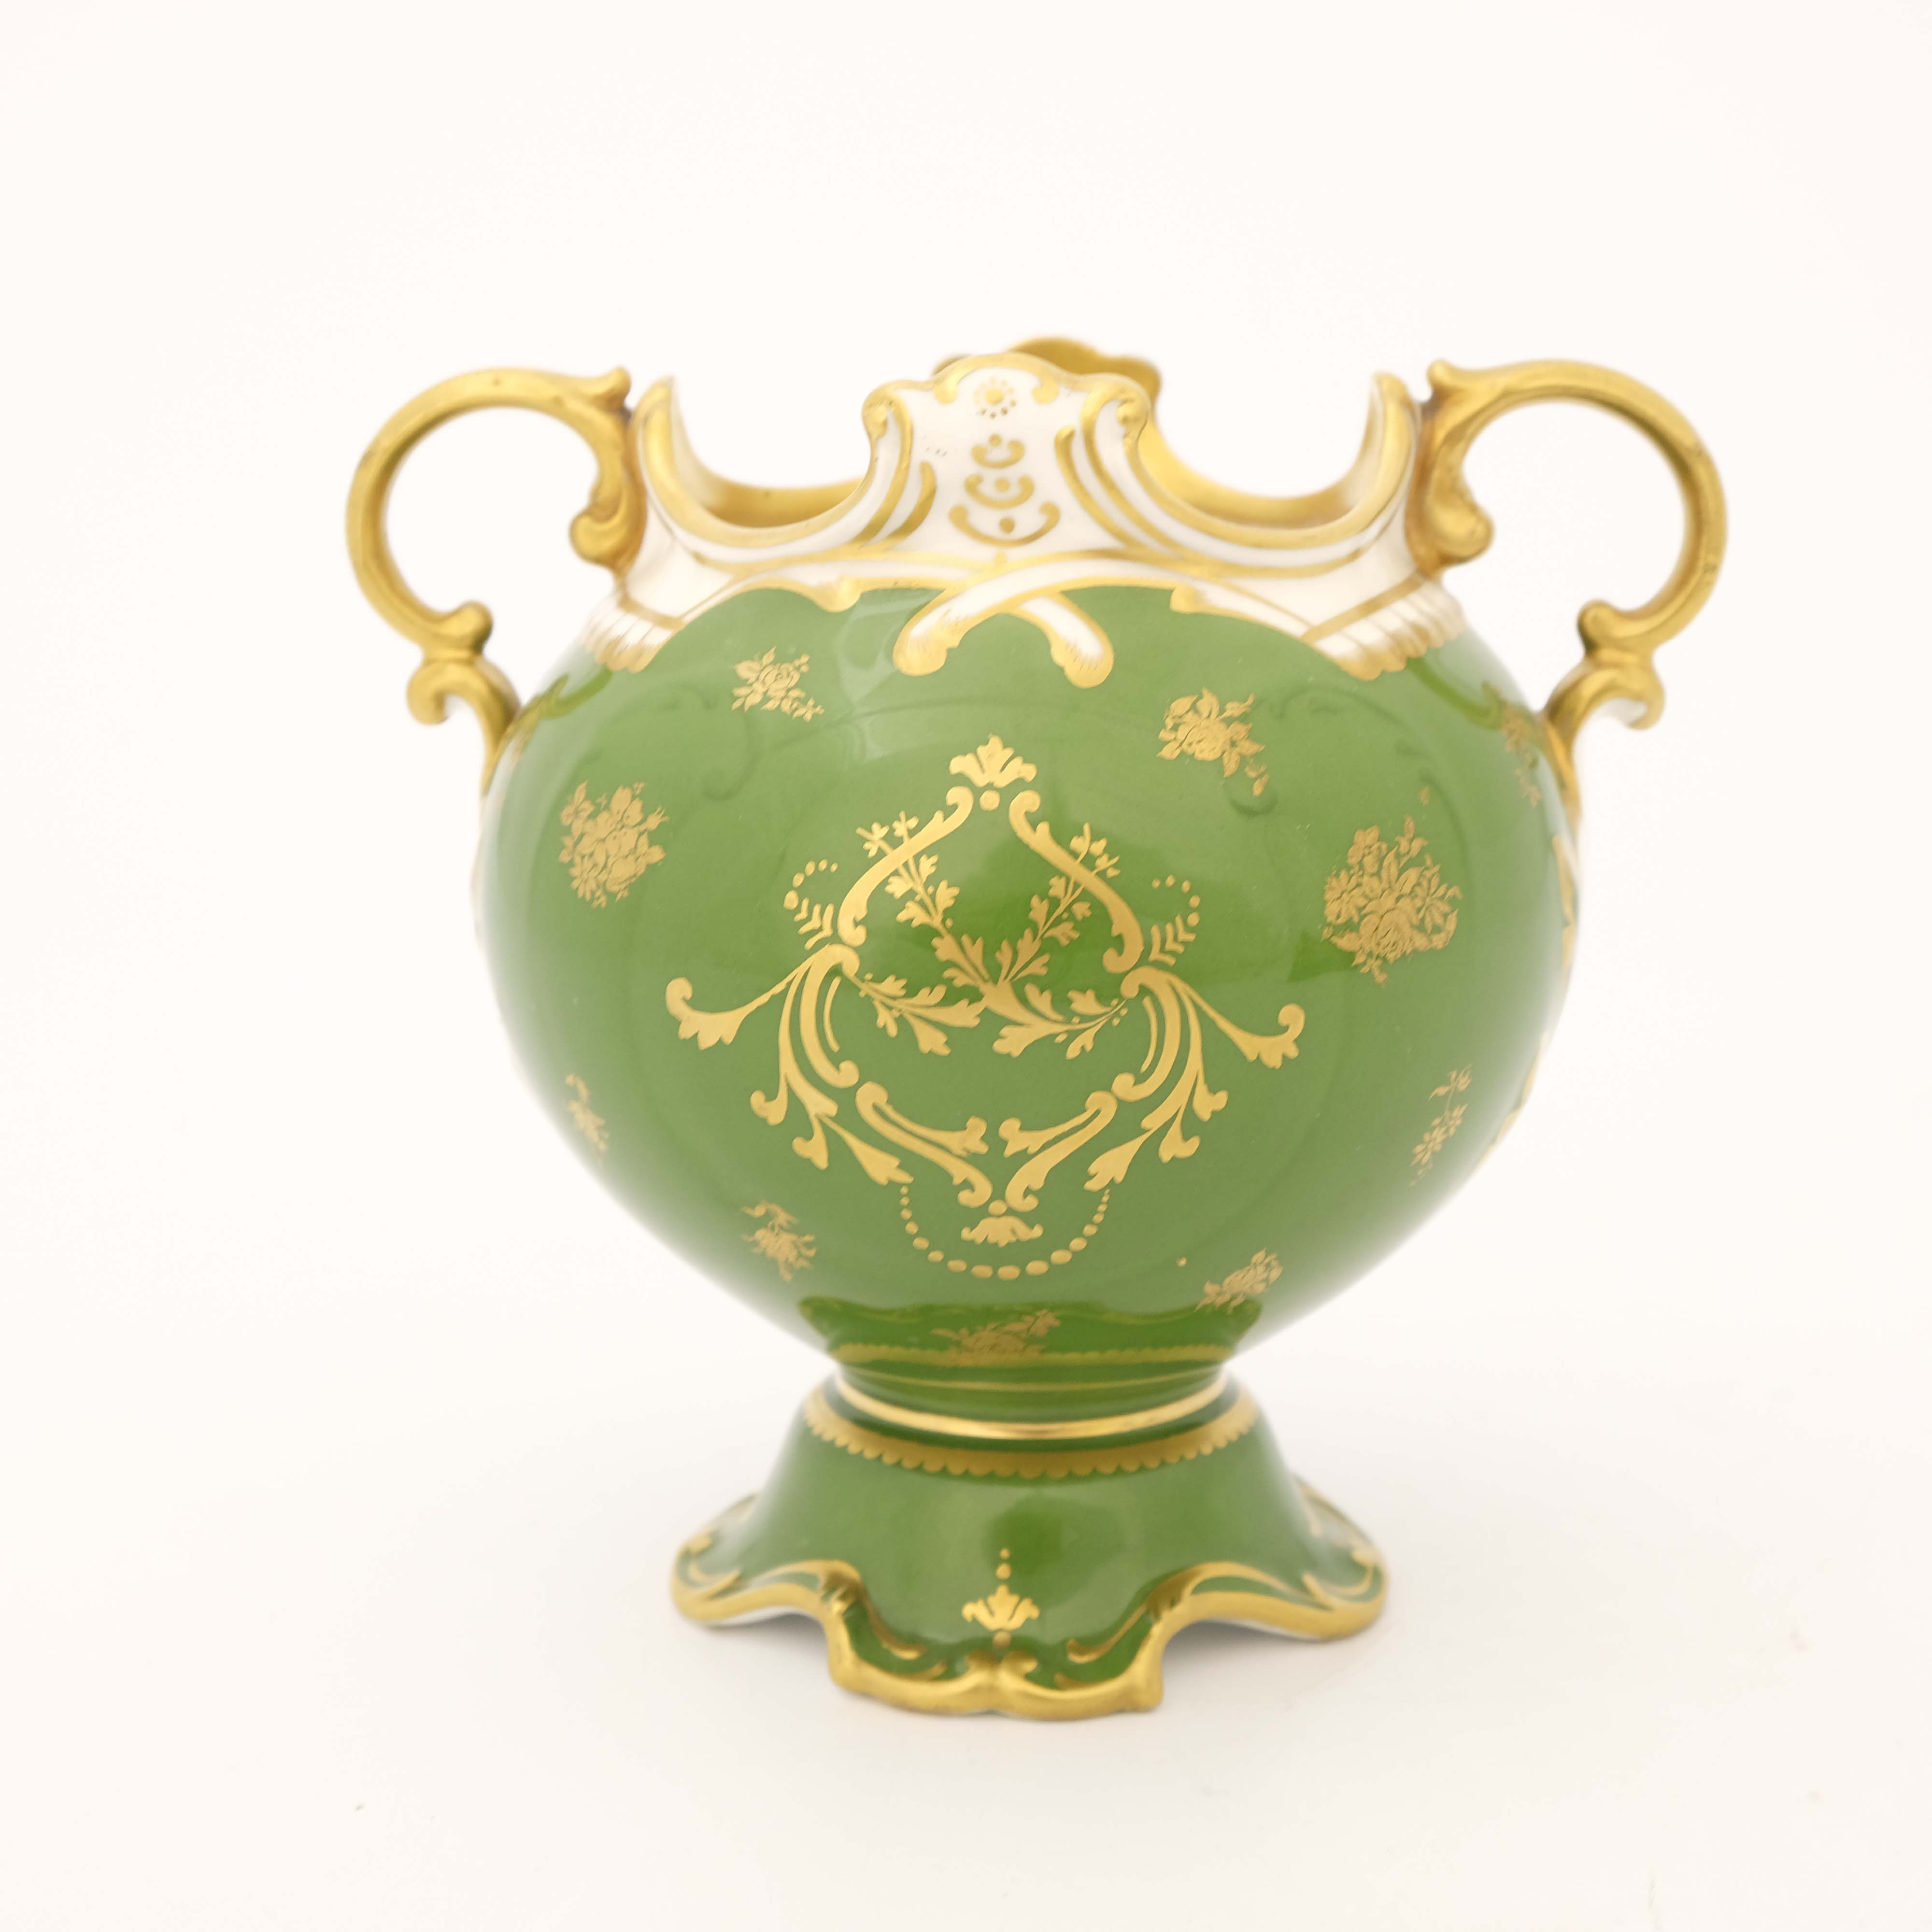 Edwin Wood for Royal Doulton, a floral painted twin handled vase - Image 3 of 7